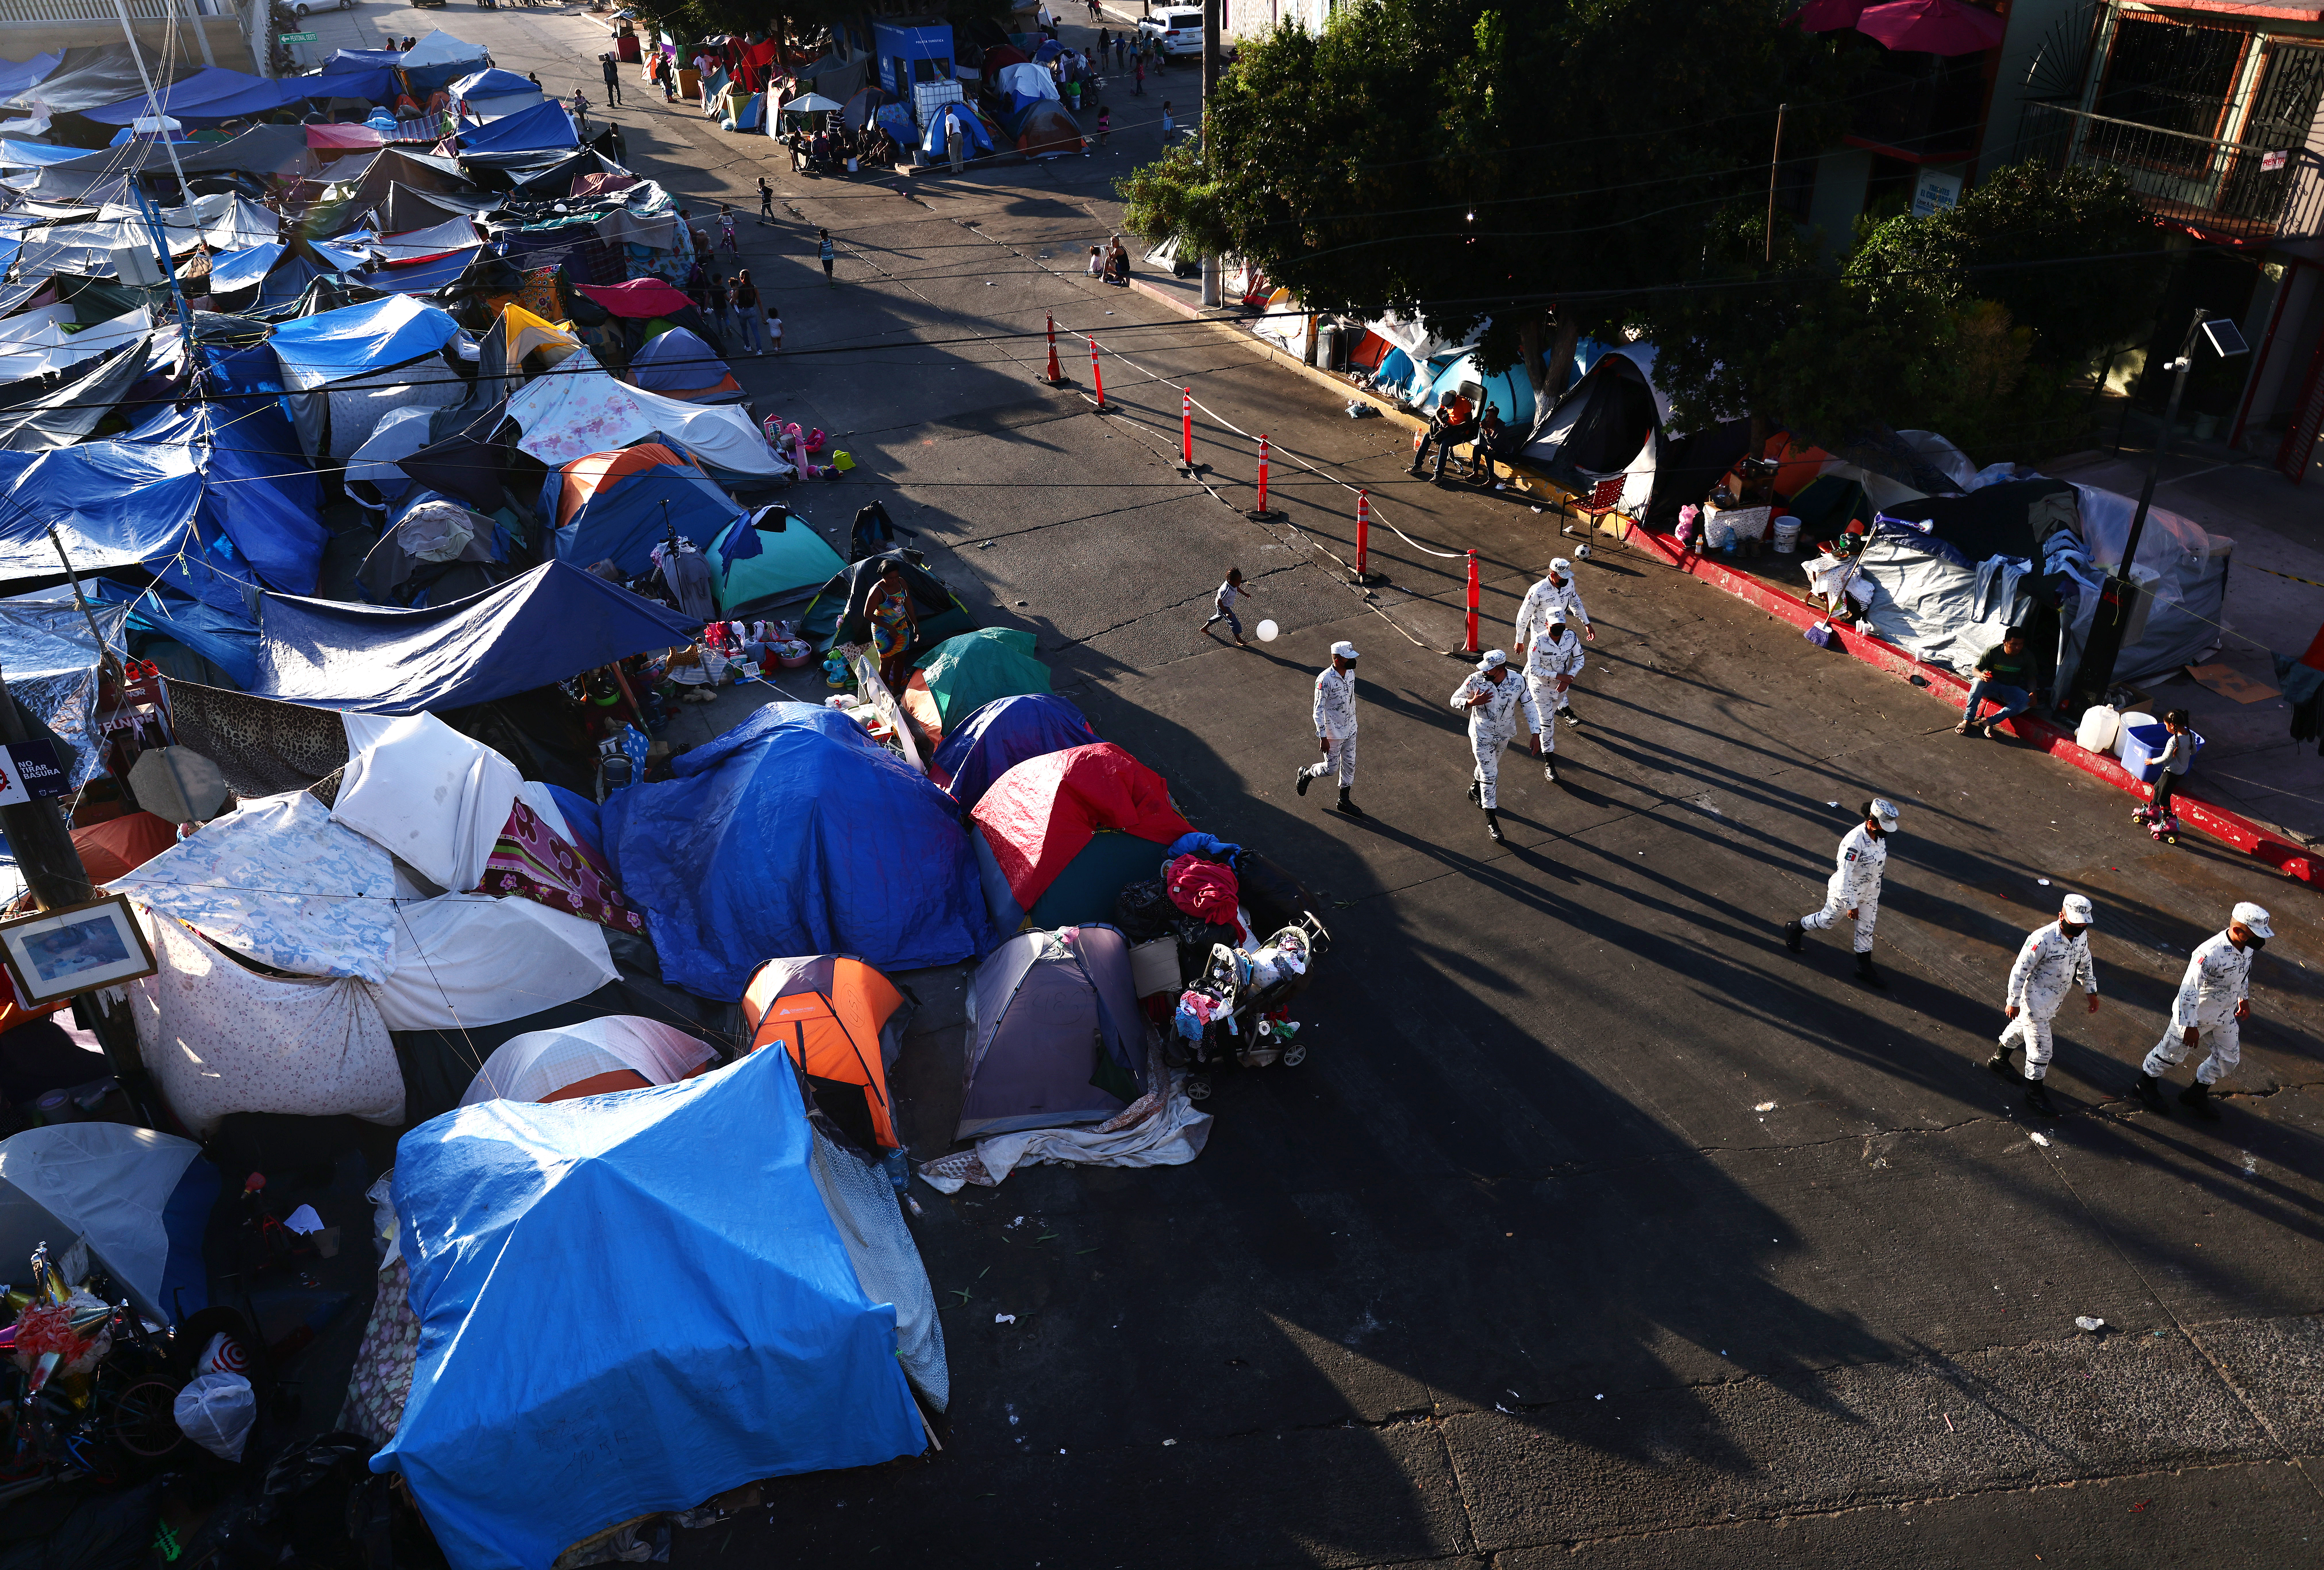 Border officials cancel entry appointments for vulnerable asylum seekers in Tijuana